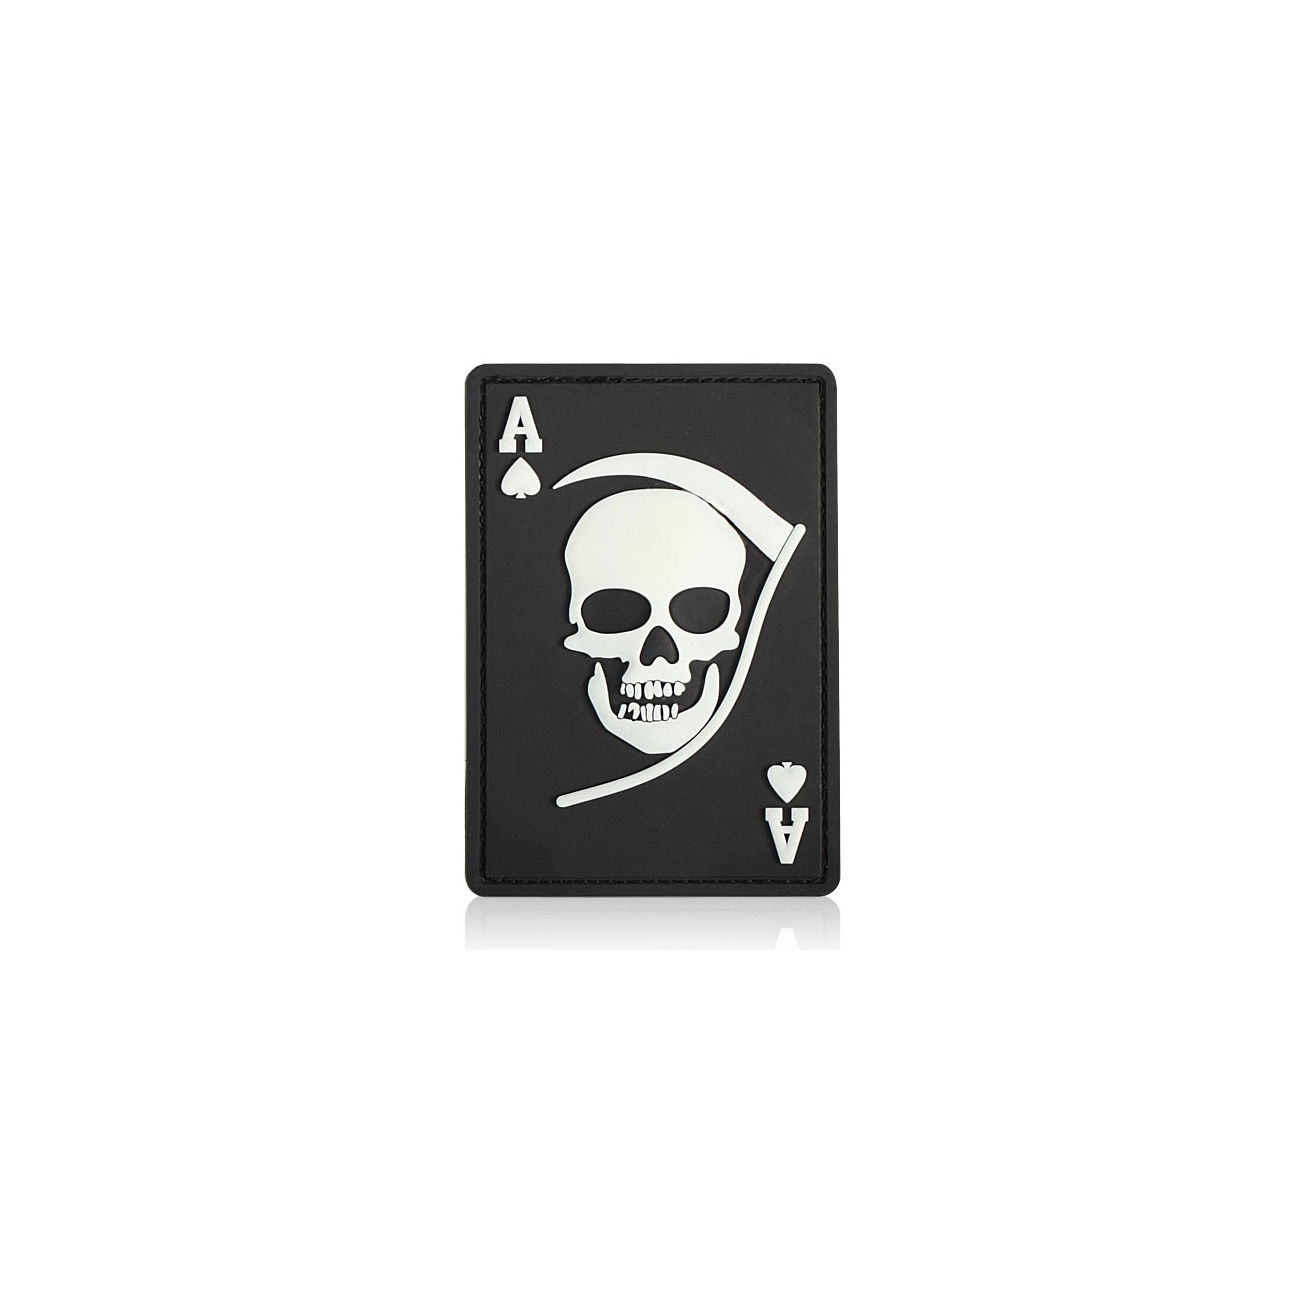 3D Rubber Patch Death Ace schwarz weiß 0